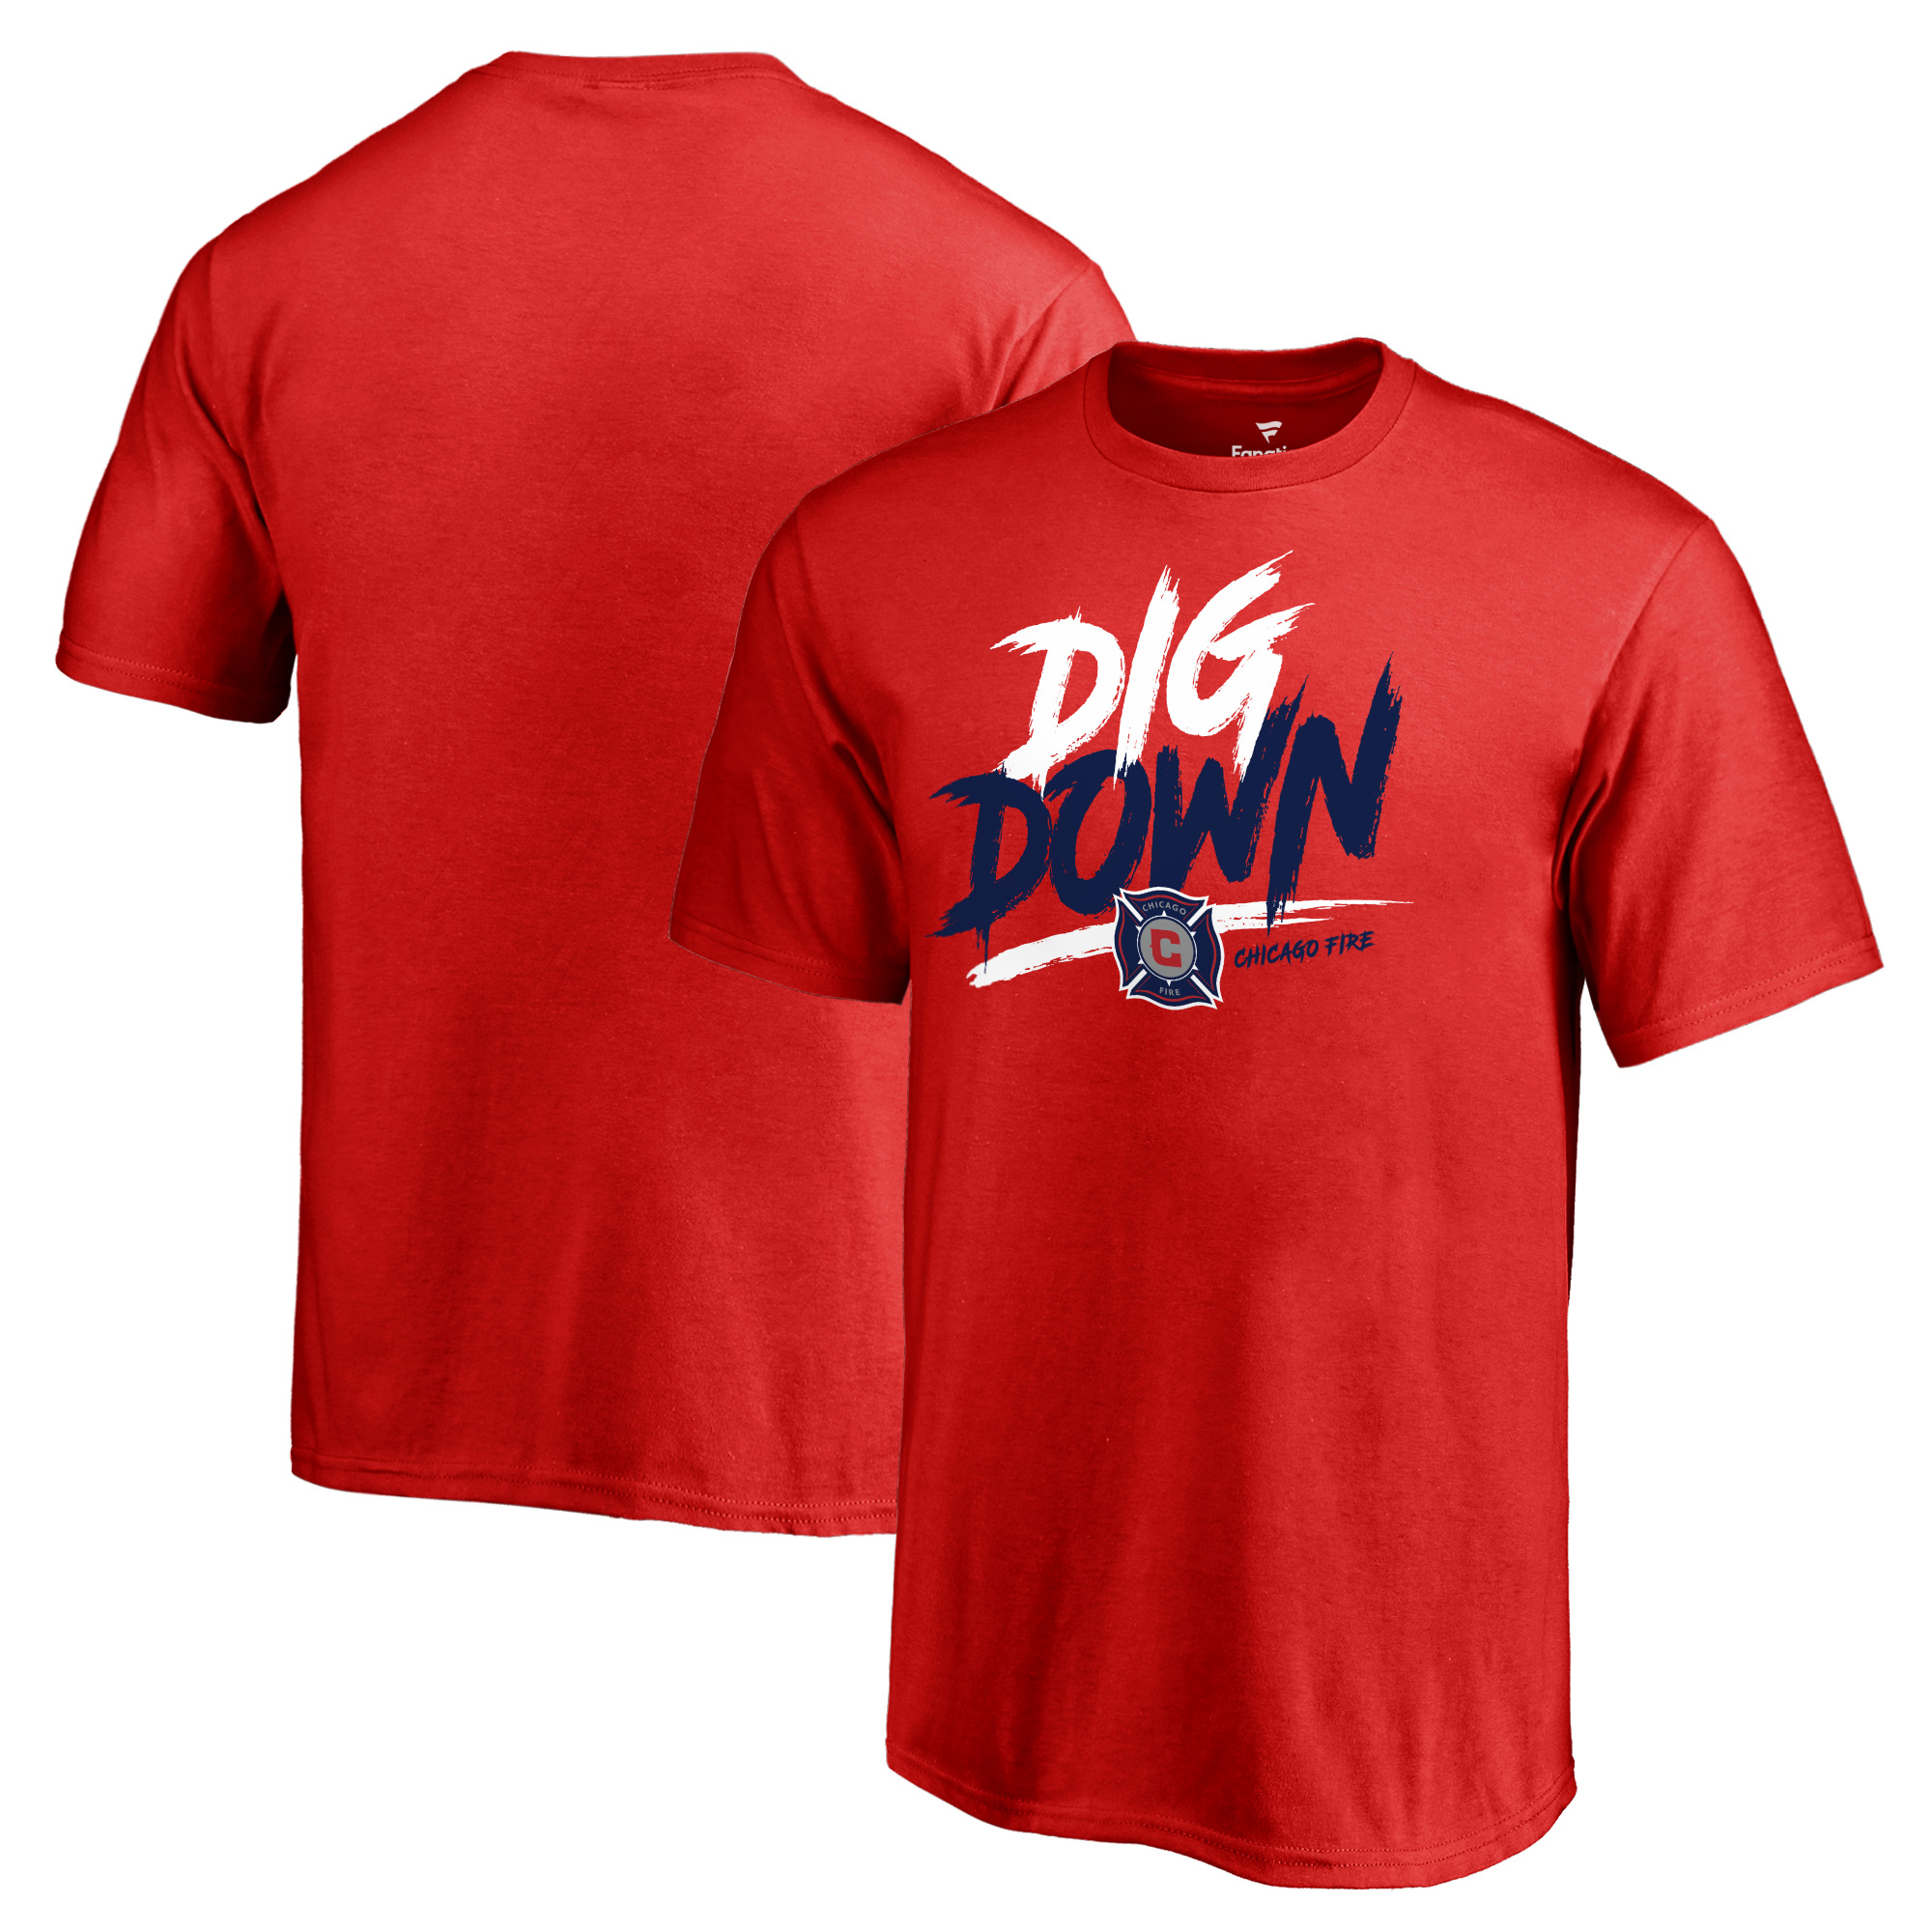 Chicago Fire Fanatics Branded Youth Dig Down T-Shirt - Red